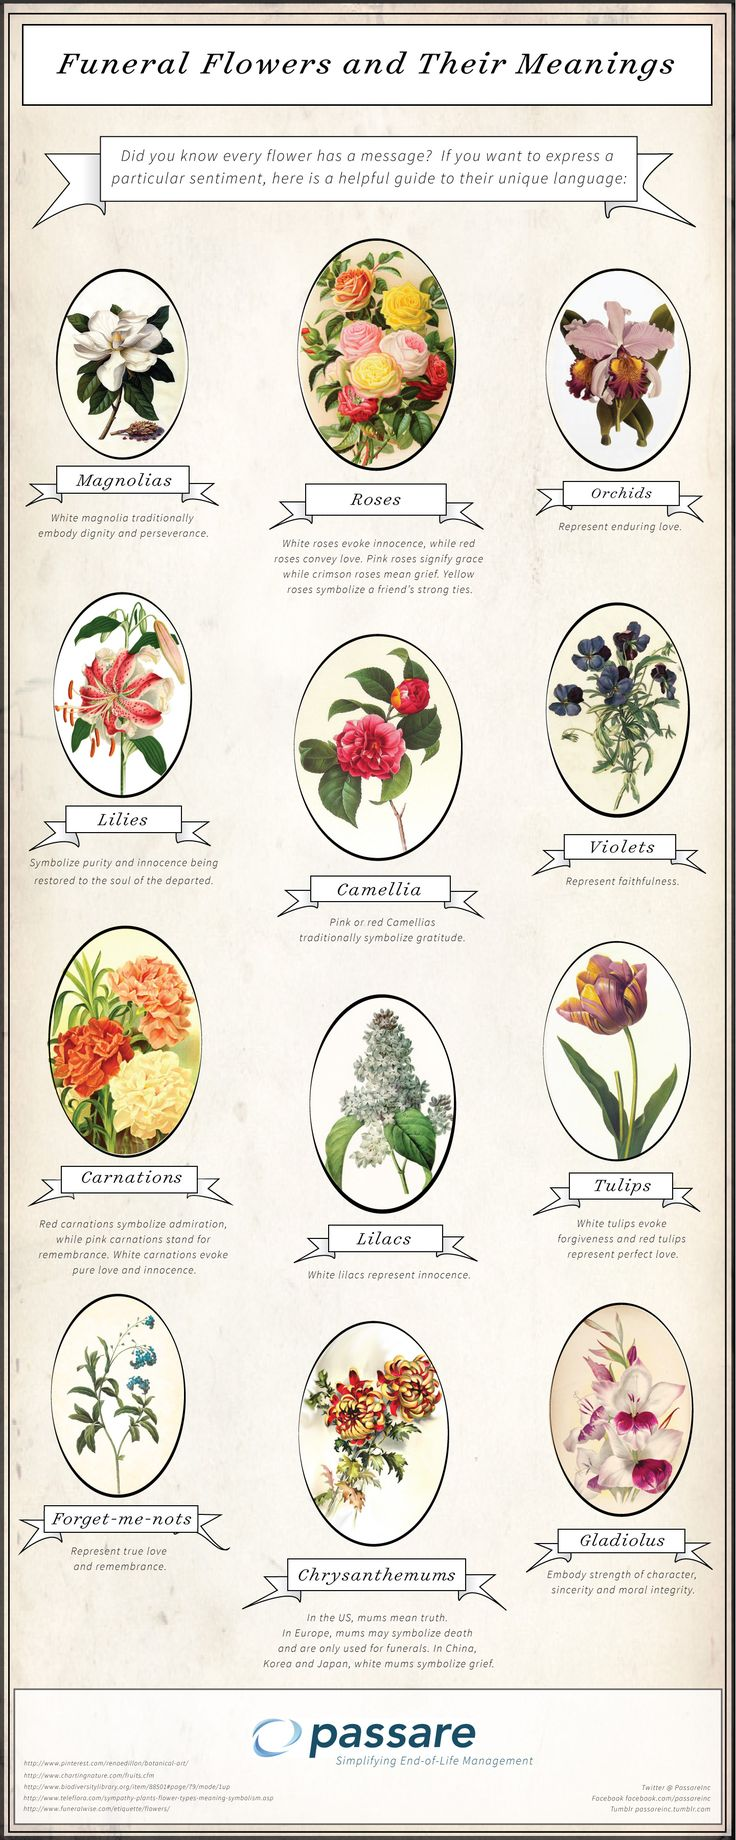 340 best the language of flowers images on pinterest flower check out this list of some of the most popular funeral flowers and their meanings buycottarizona Gallery